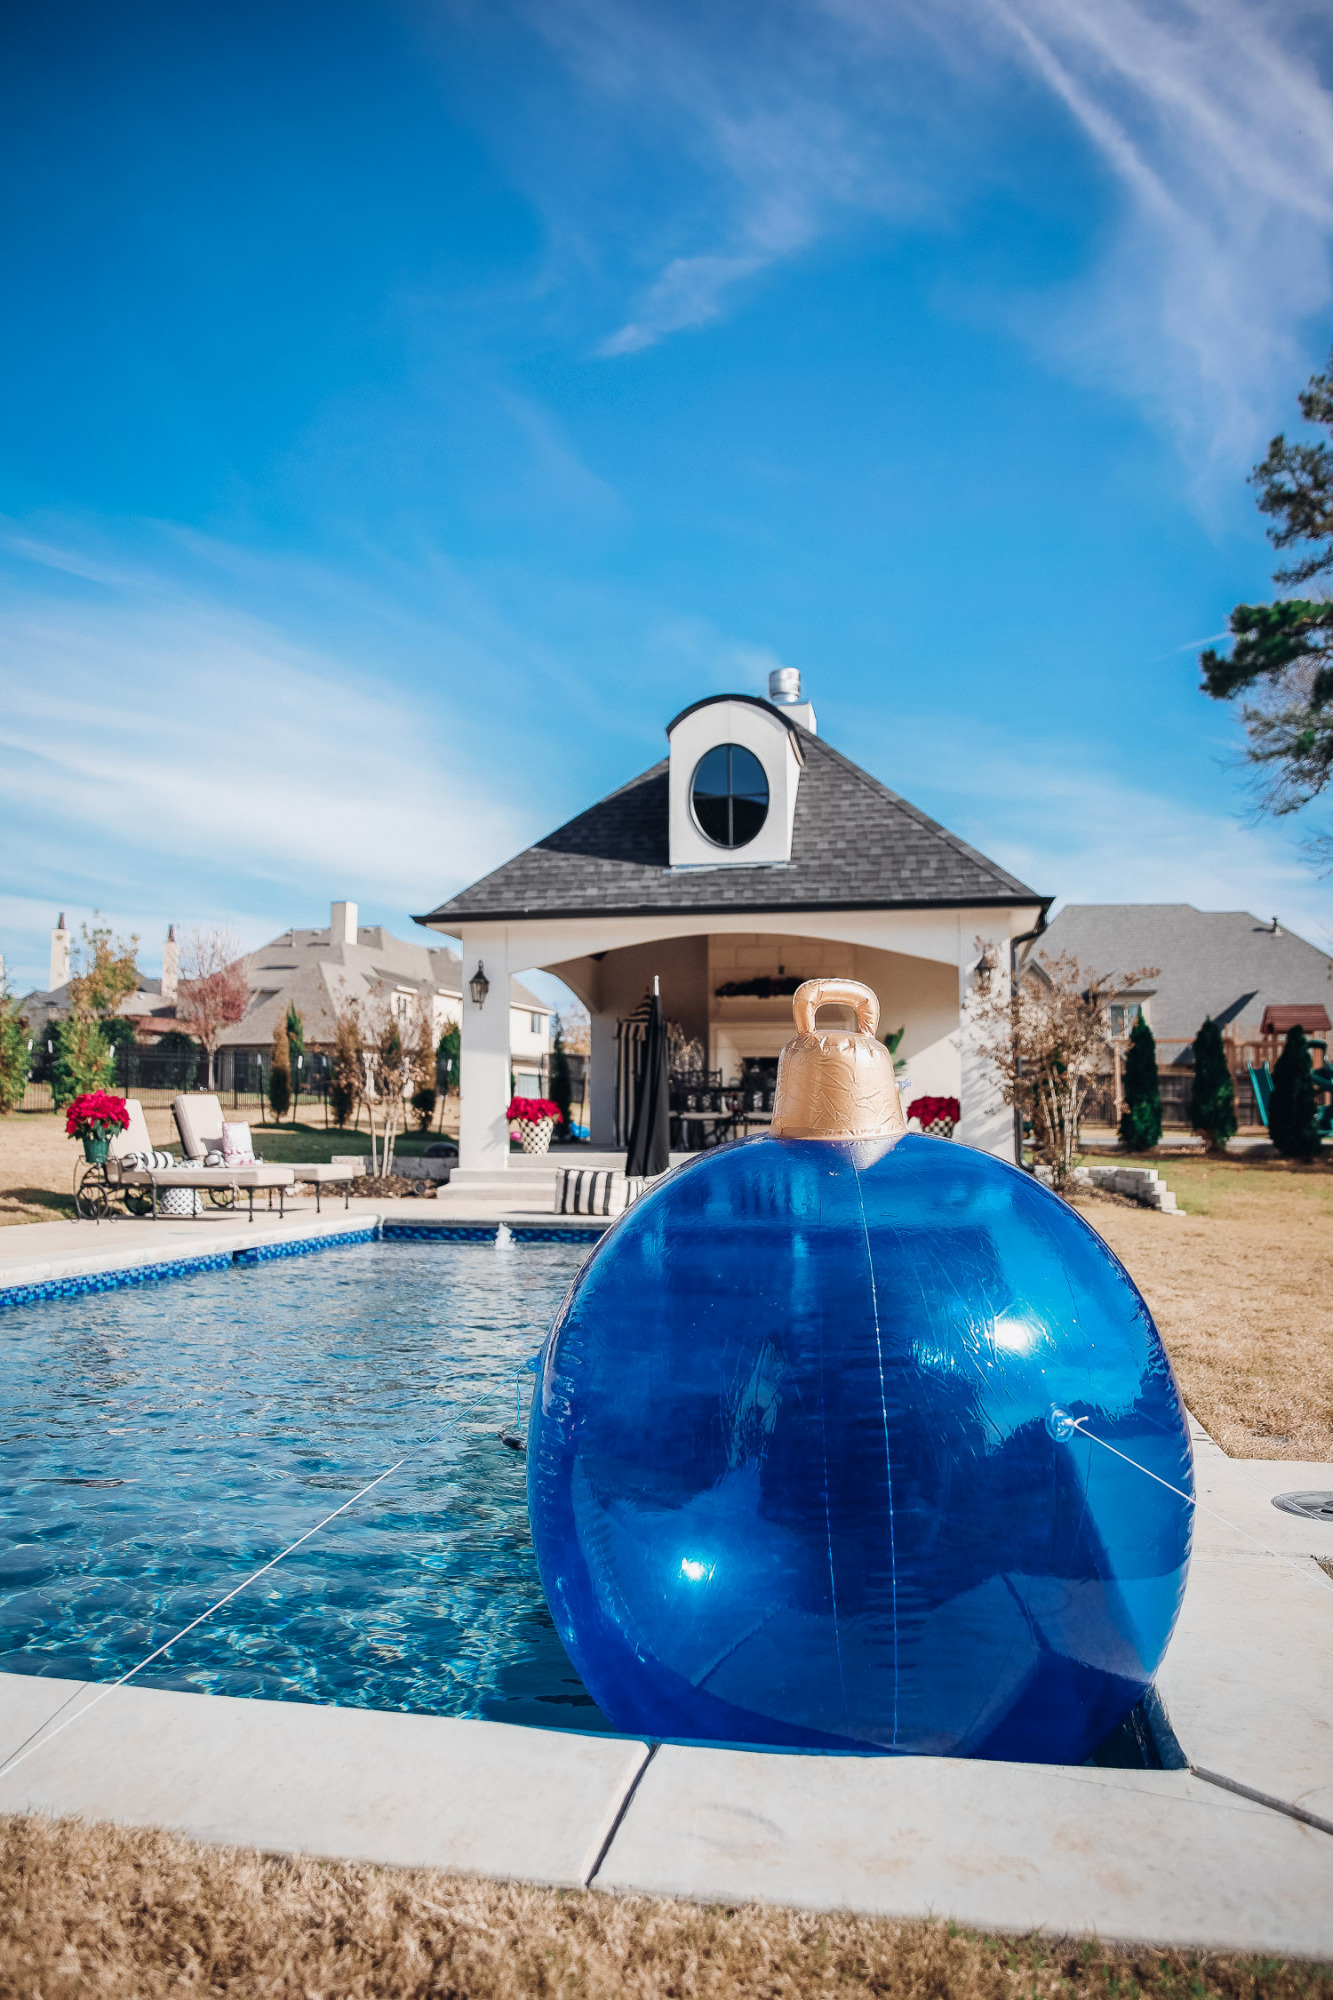 backyard decor christmas, outdoor pool christmas decor, walmart pool ornament, emily gemma backyard |Christmas Pool Decorations by popular US life and style blog, The Sweetest Thing: image of a pool house decorated with Christmas garland, black and red buffalo check throw pillows, Christmas tree decor, poinsettia plants, and inflatable Christmas ornaments.